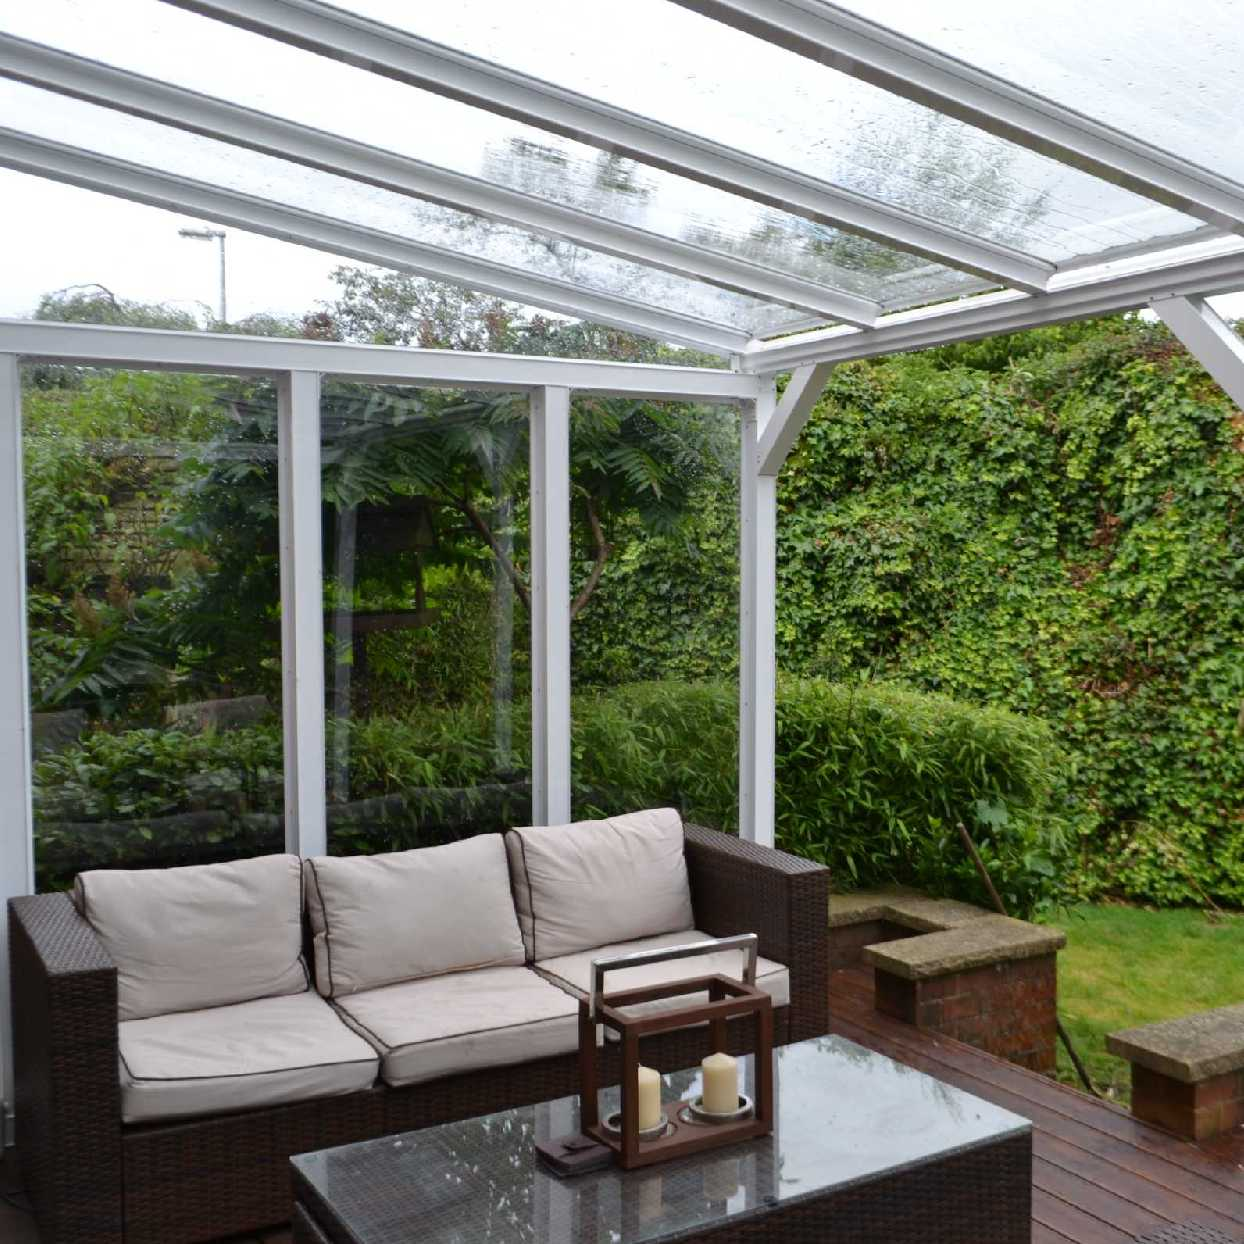 Great selection of Omega Smart White Lean-To Canopy with 16mm Polycarbonate Glazing - 3.5m (W) x 4.5m (P), (3) Supporting Posts